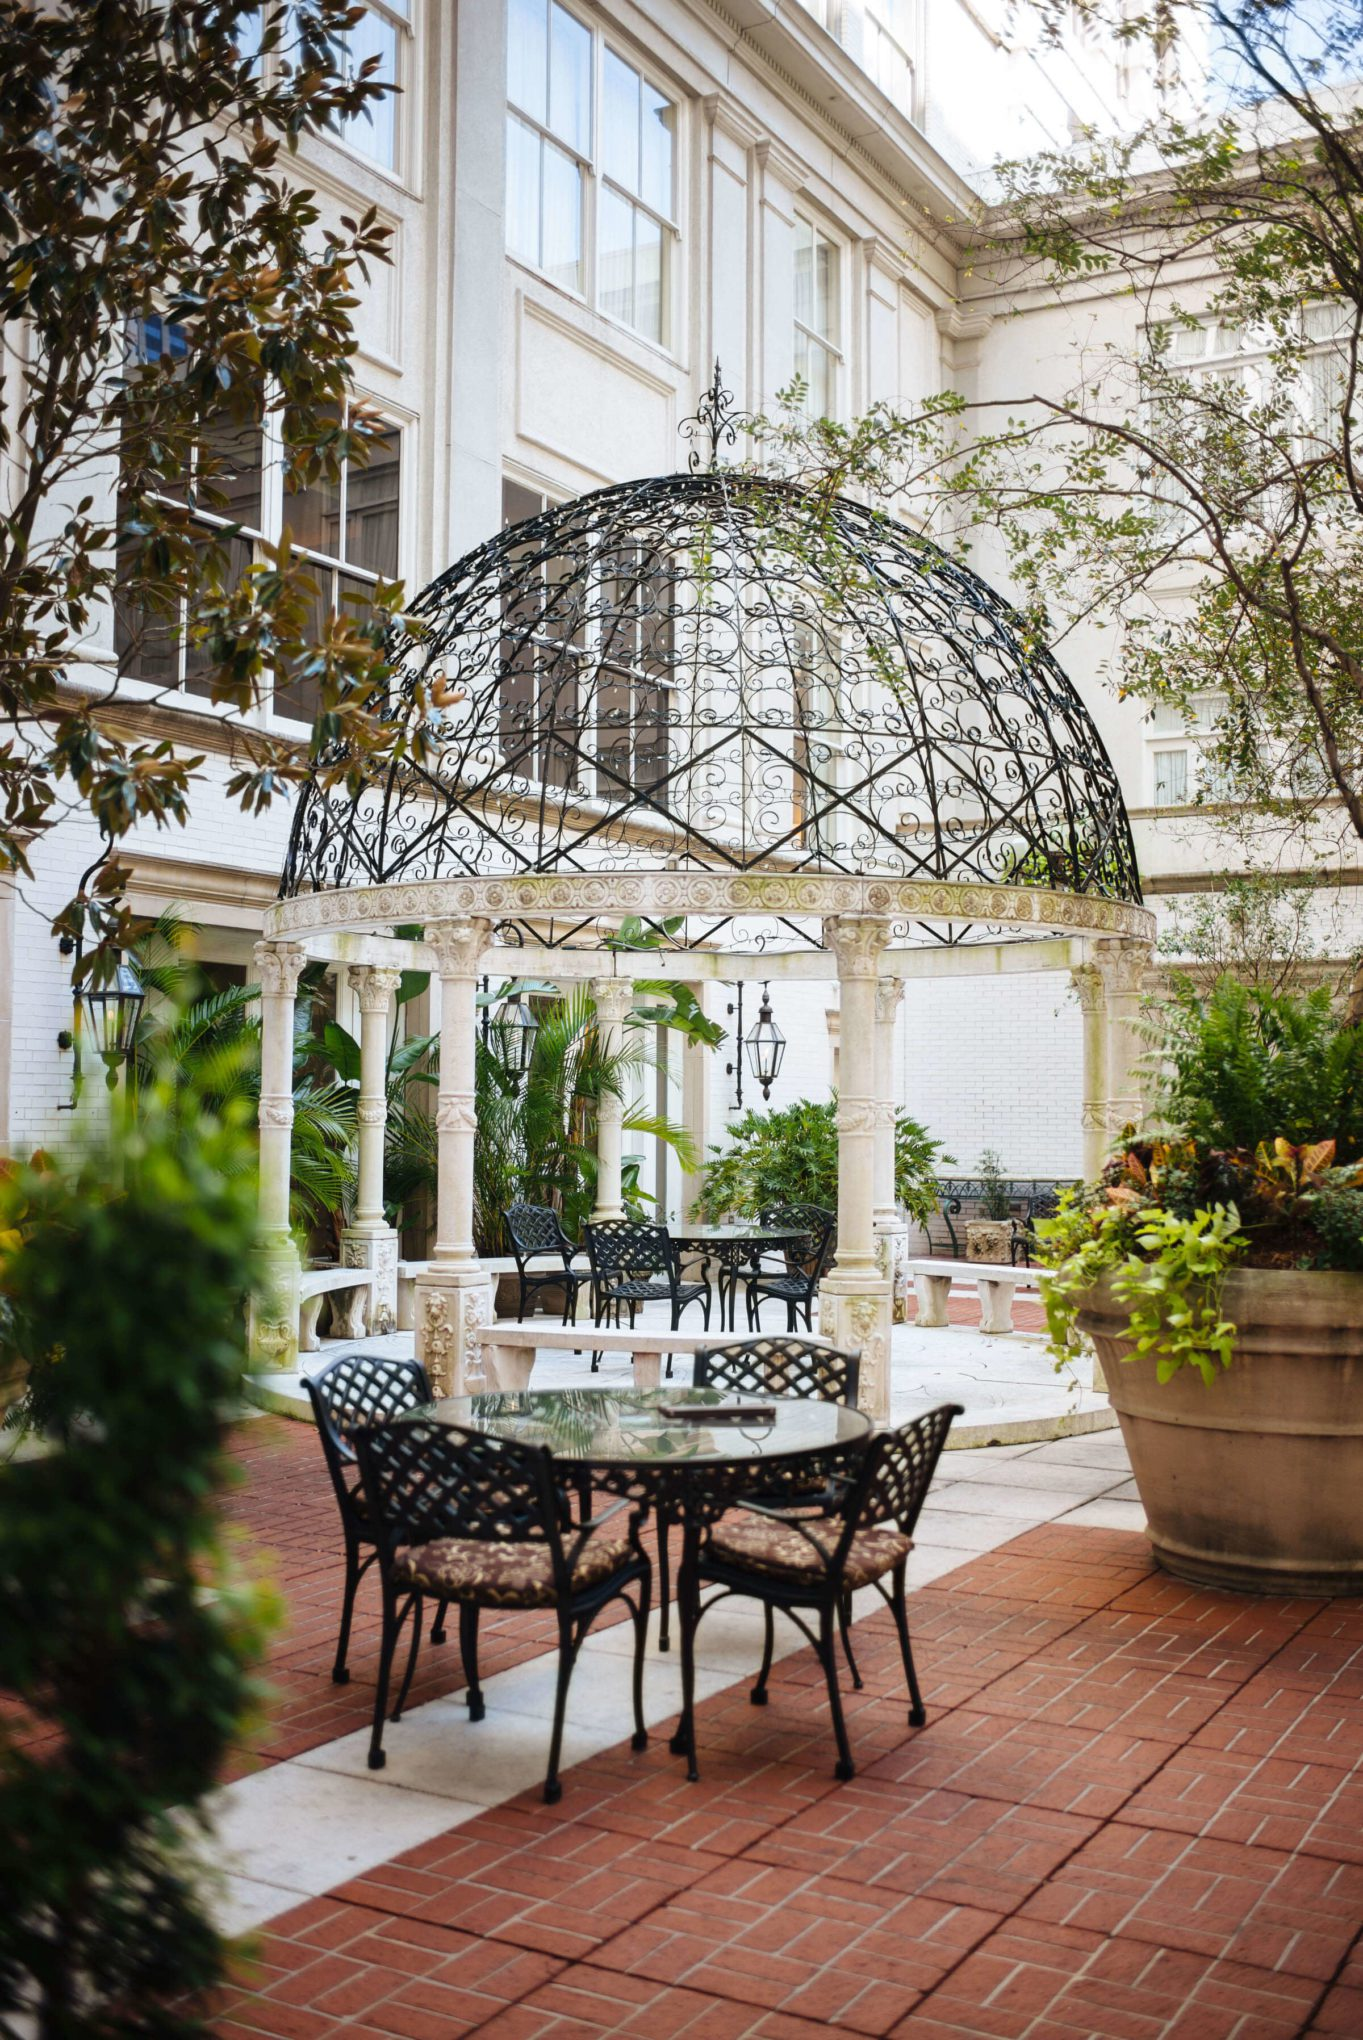 Interior patio at the best hotel in New Orleans, The Ritz-Carlton New Orleans, The Taste SF